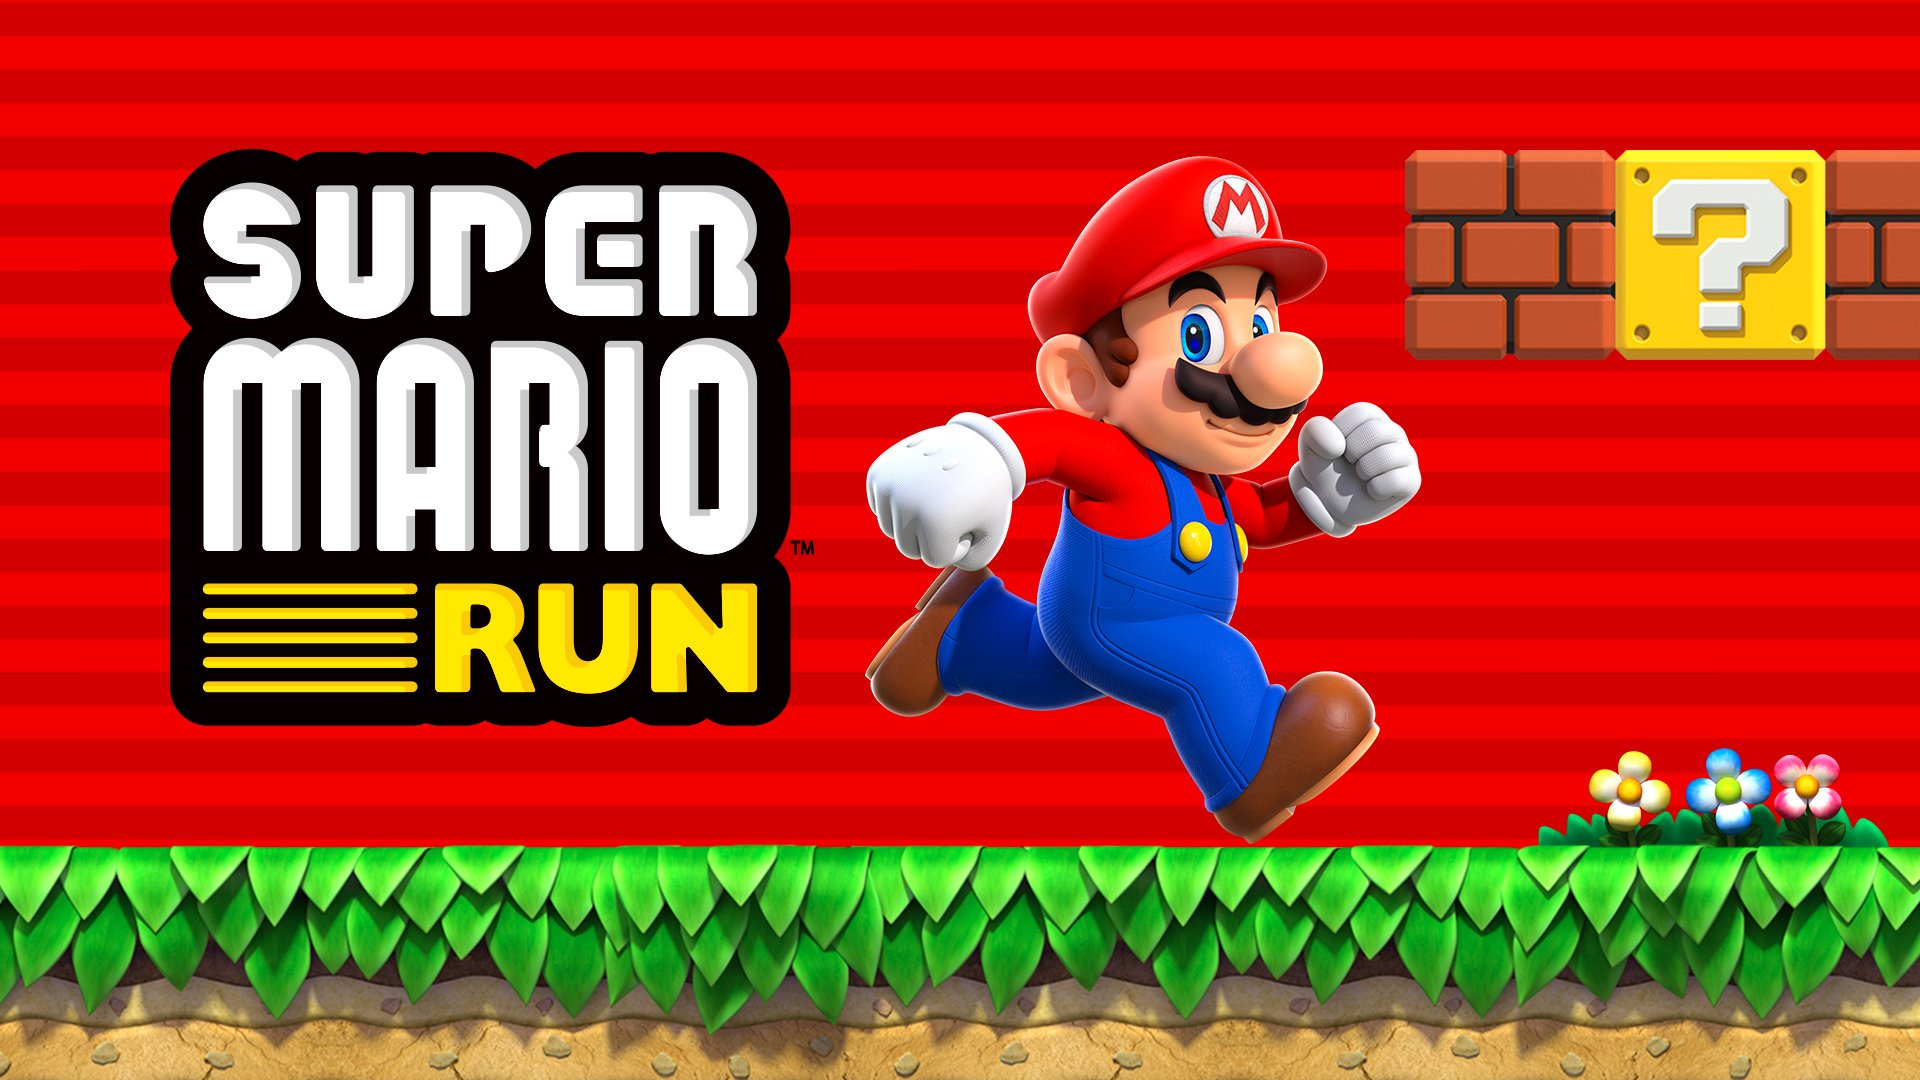 Cover image for Why Super Mario Run Will Be A Hit Game, But Not A Mobile Craze